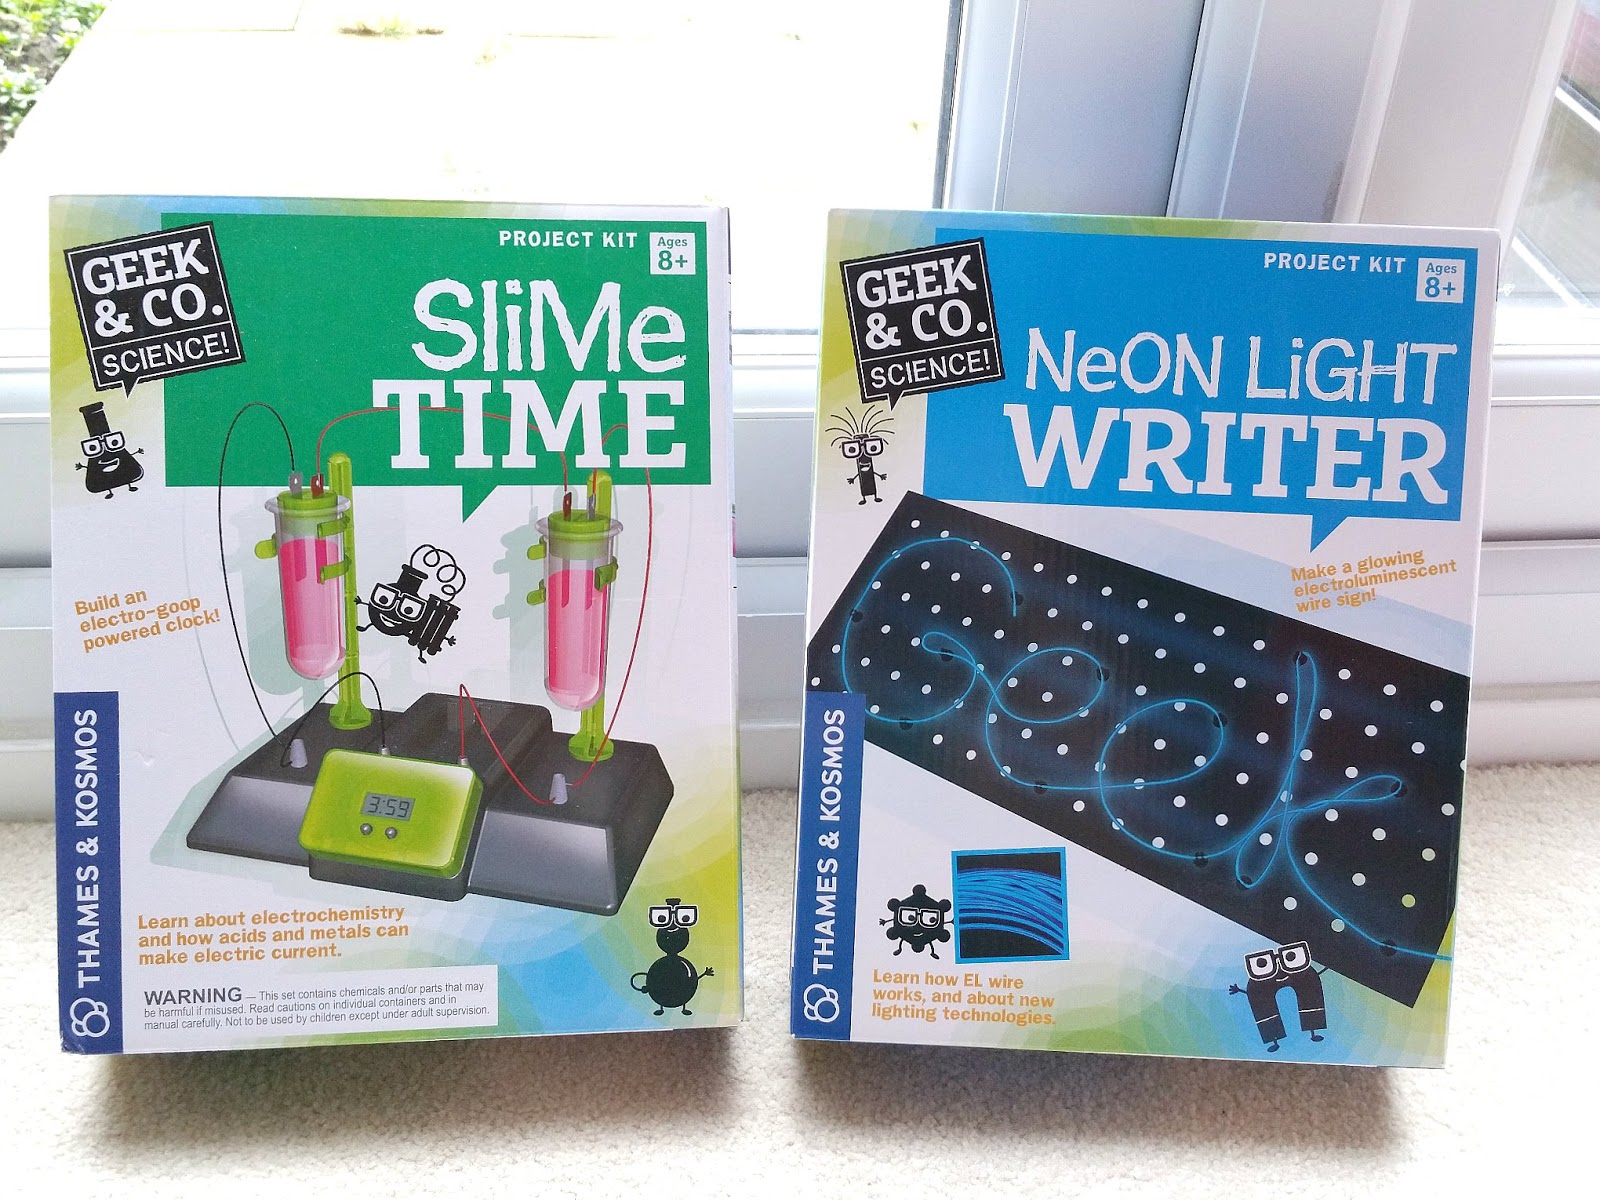 Thames and Kosmos STEM kits, Neon Light Writer, Slime Time